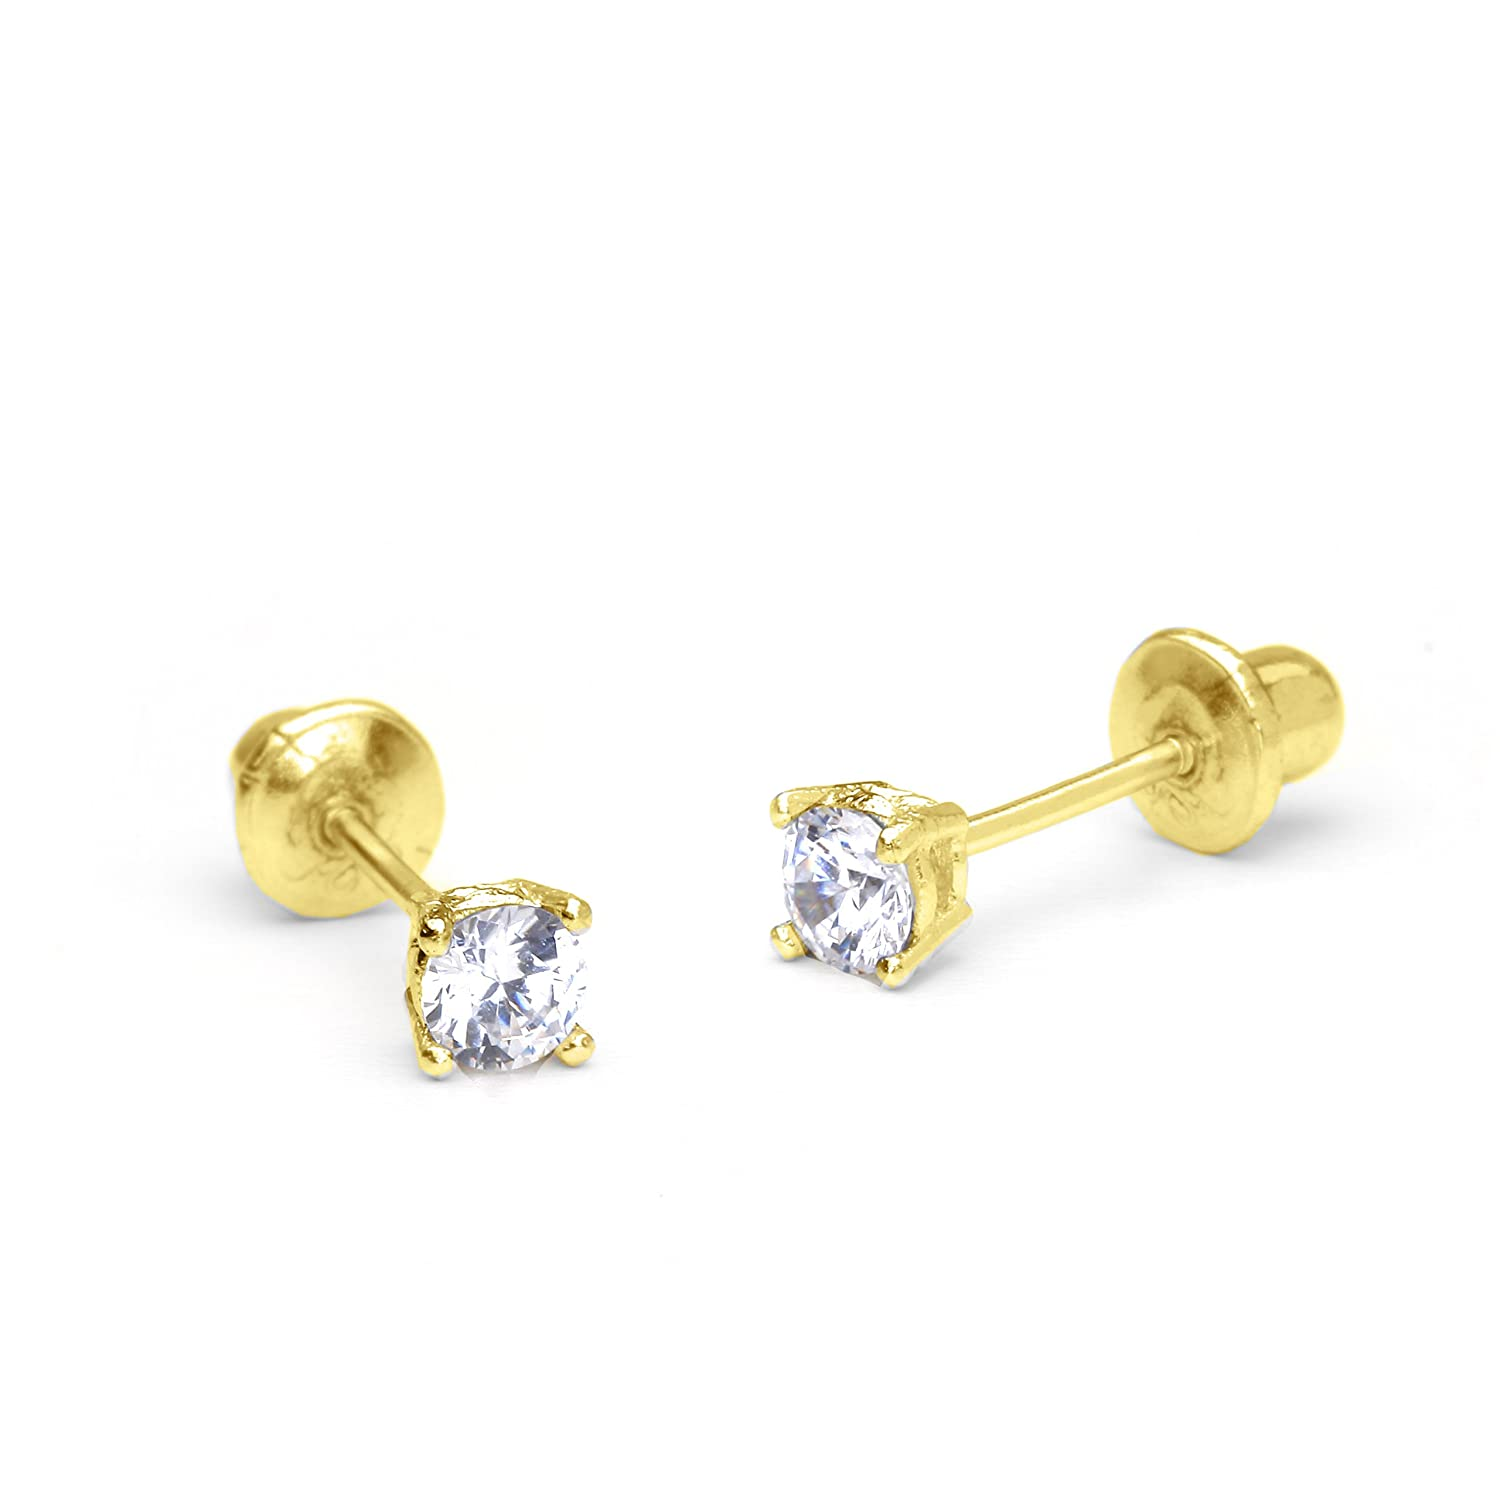 14k Yellow Gold 3, 4, 5mm Basket Setting Round Solitaire Children Screw-Back Earrings Baby, Toddler & Kids Lovearing 14R2-04